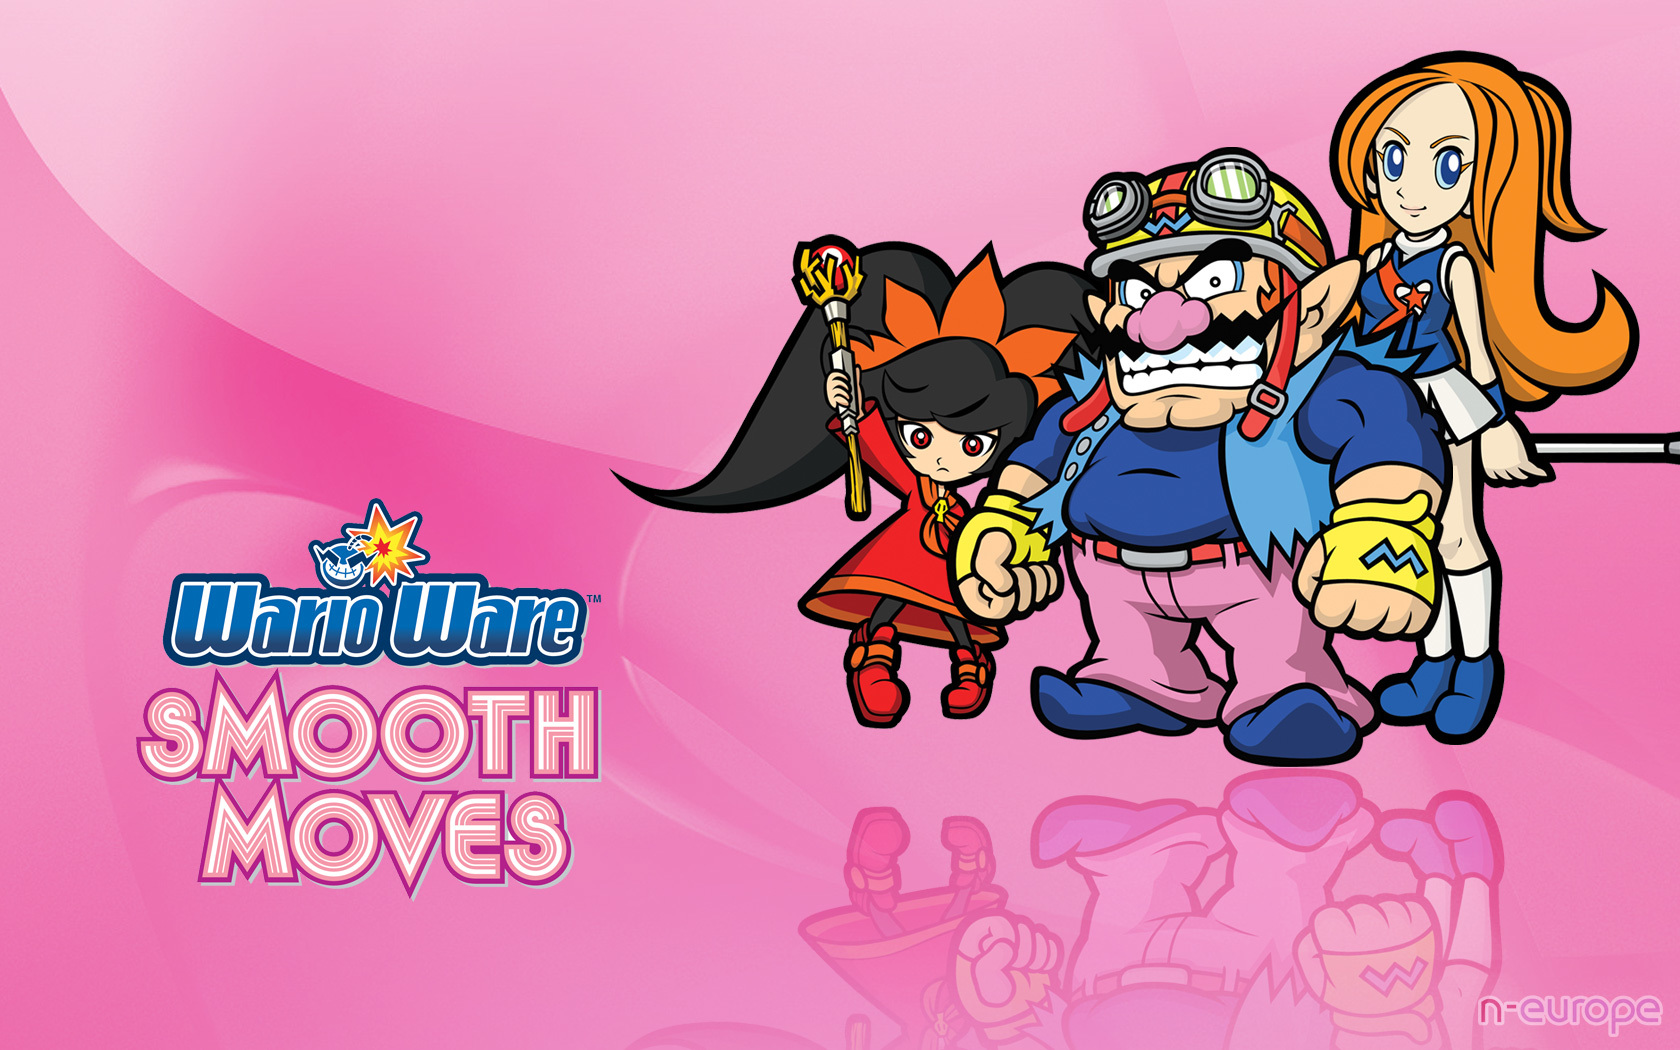 smooth moves Wario lets HD Wallpaper